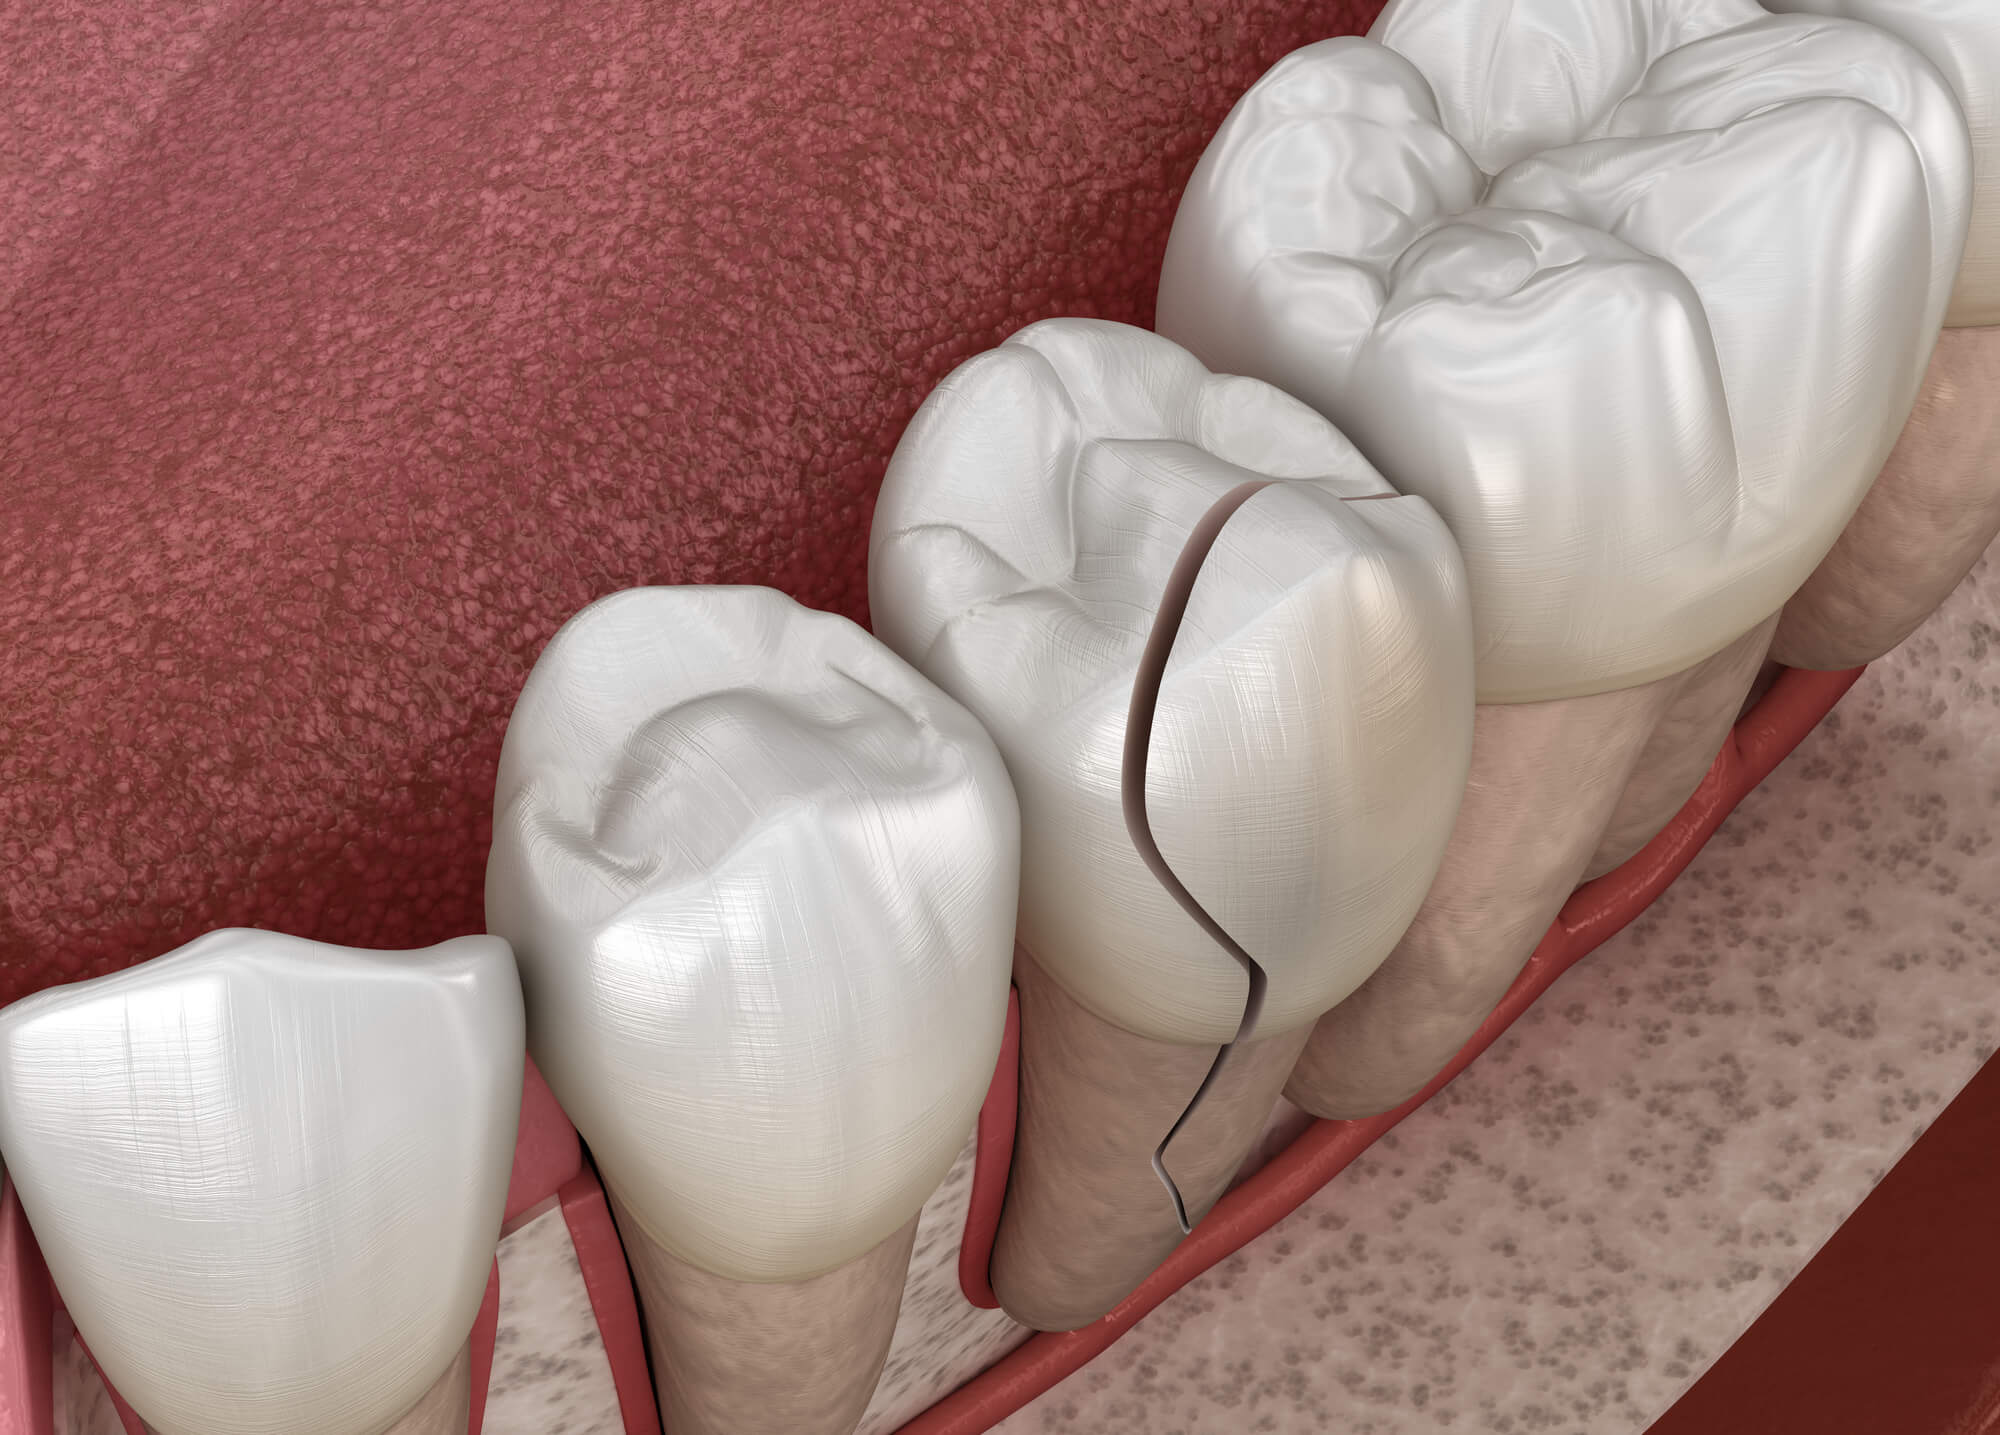 Where can I go for a Broken Tooth Cary NC?